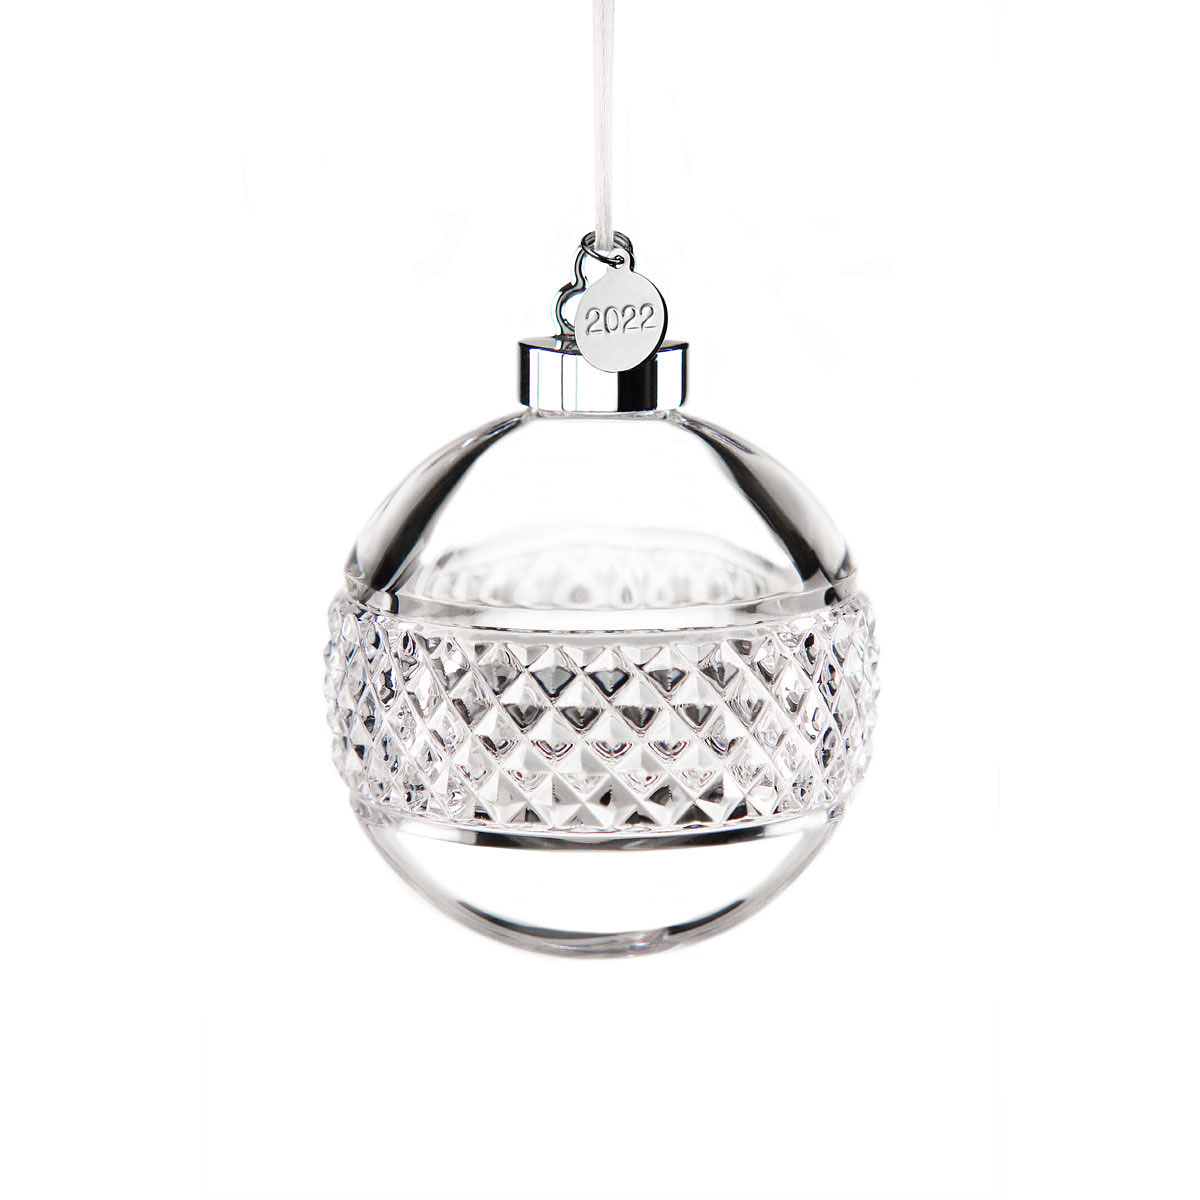 Cashs Ireland, 2021 Cooper Dated Ball Ornament, Limited Edition